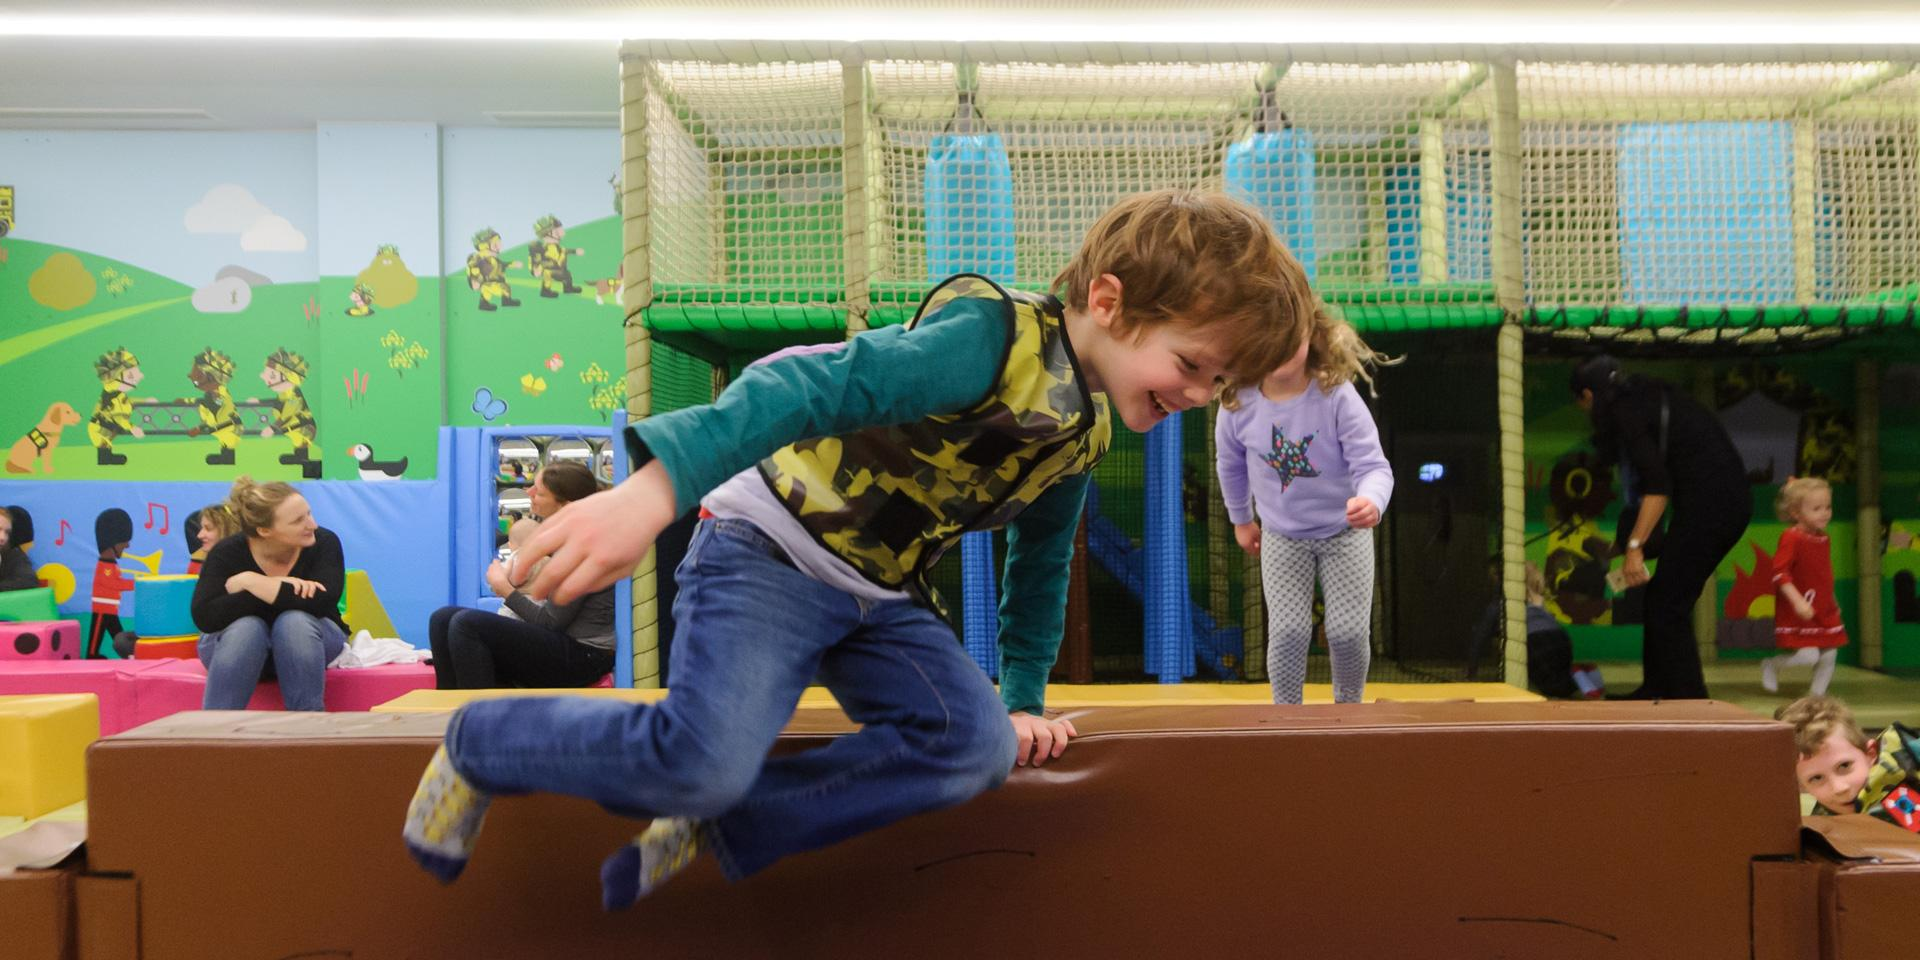 A child in Play Base